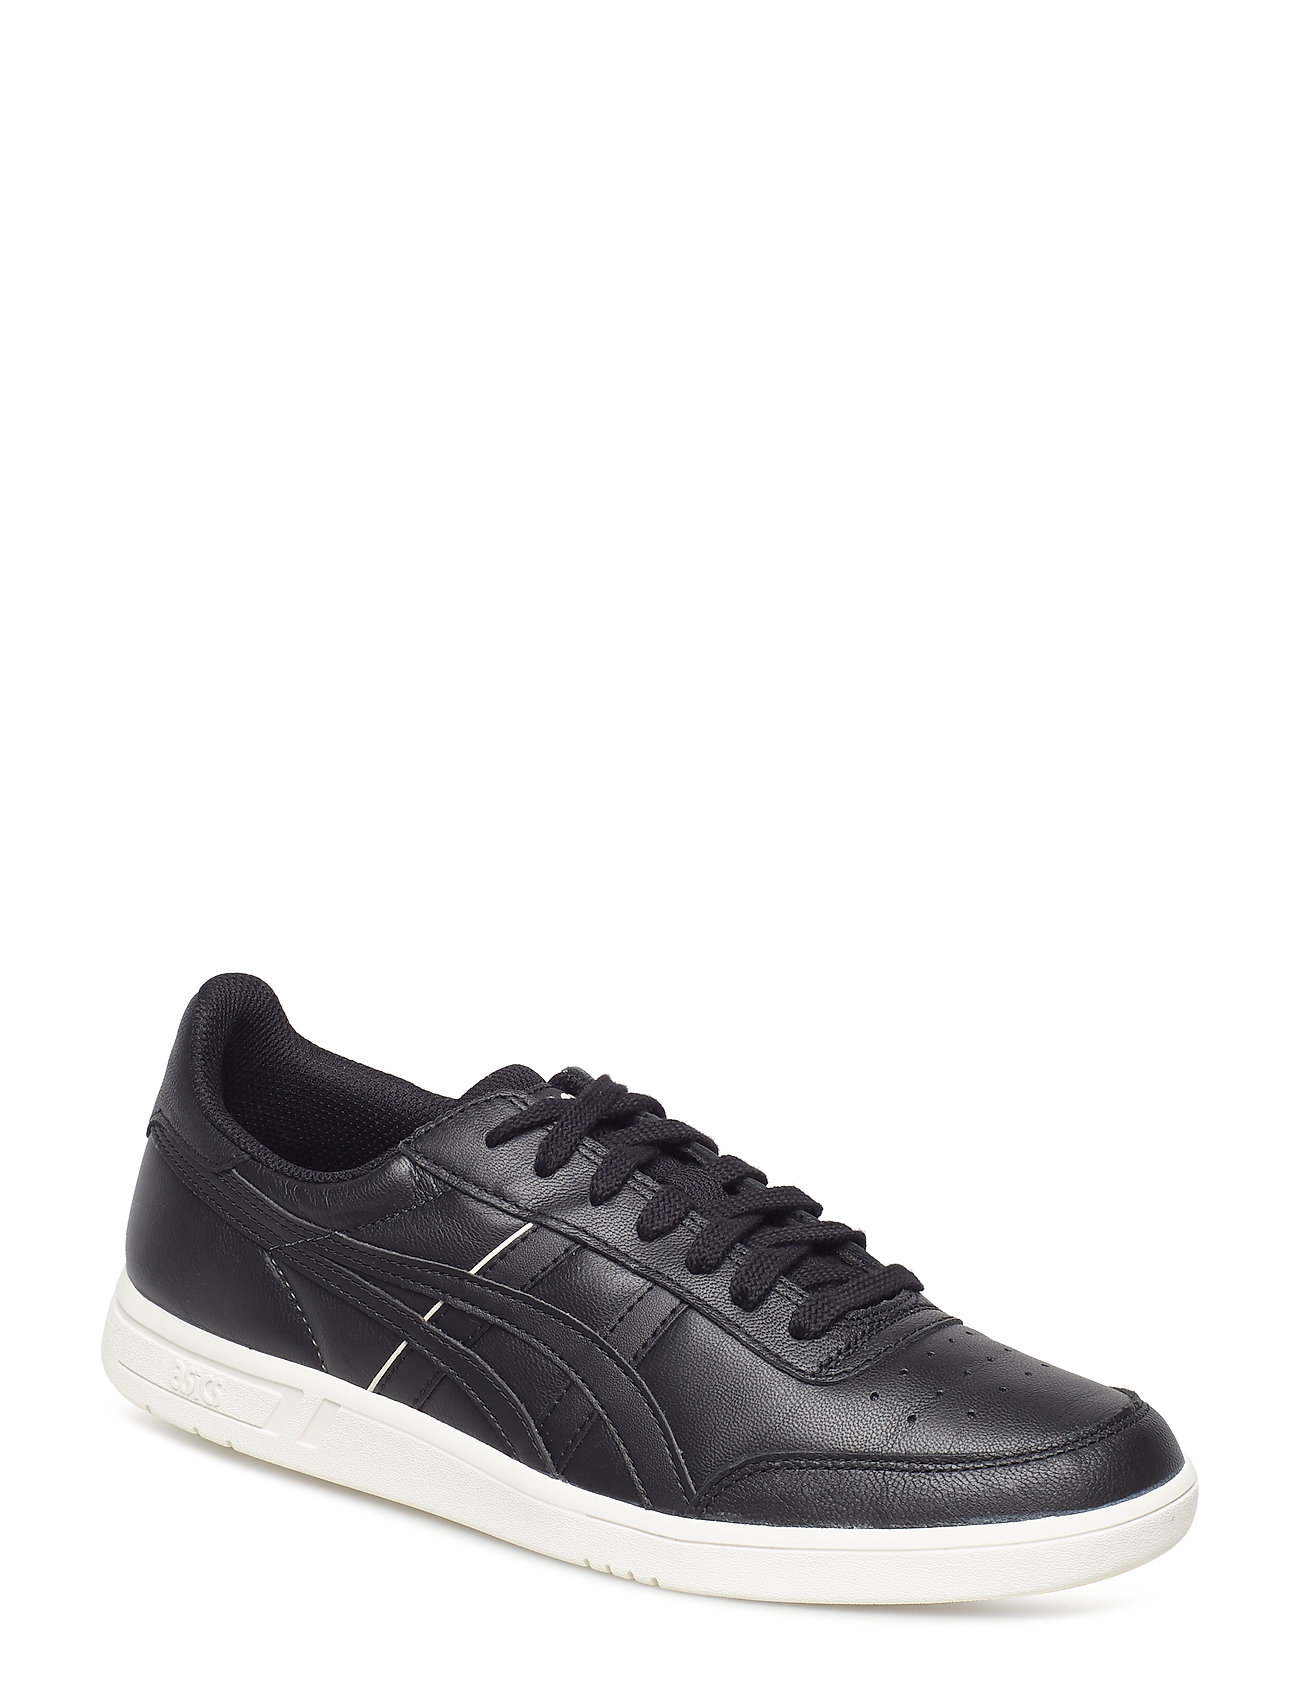 Image of Gel-Vickka Trs Low-top Sneakers Sort Asics Tiger (3073373531)